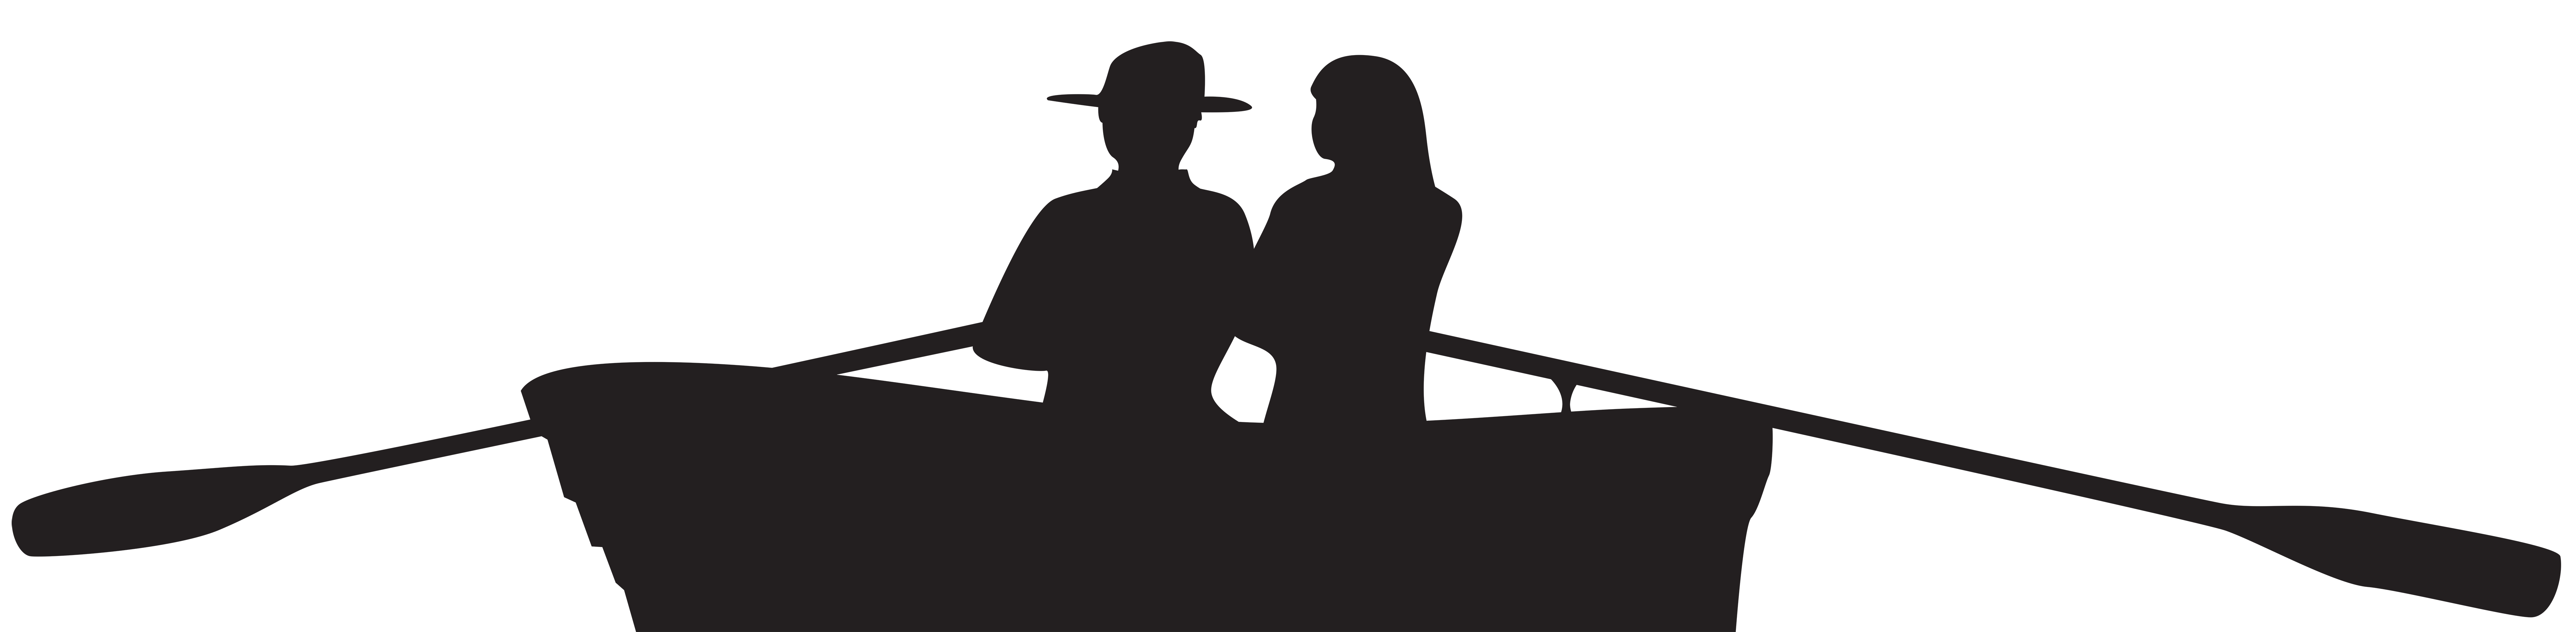 Clipart boat person. Couple on silhouette png